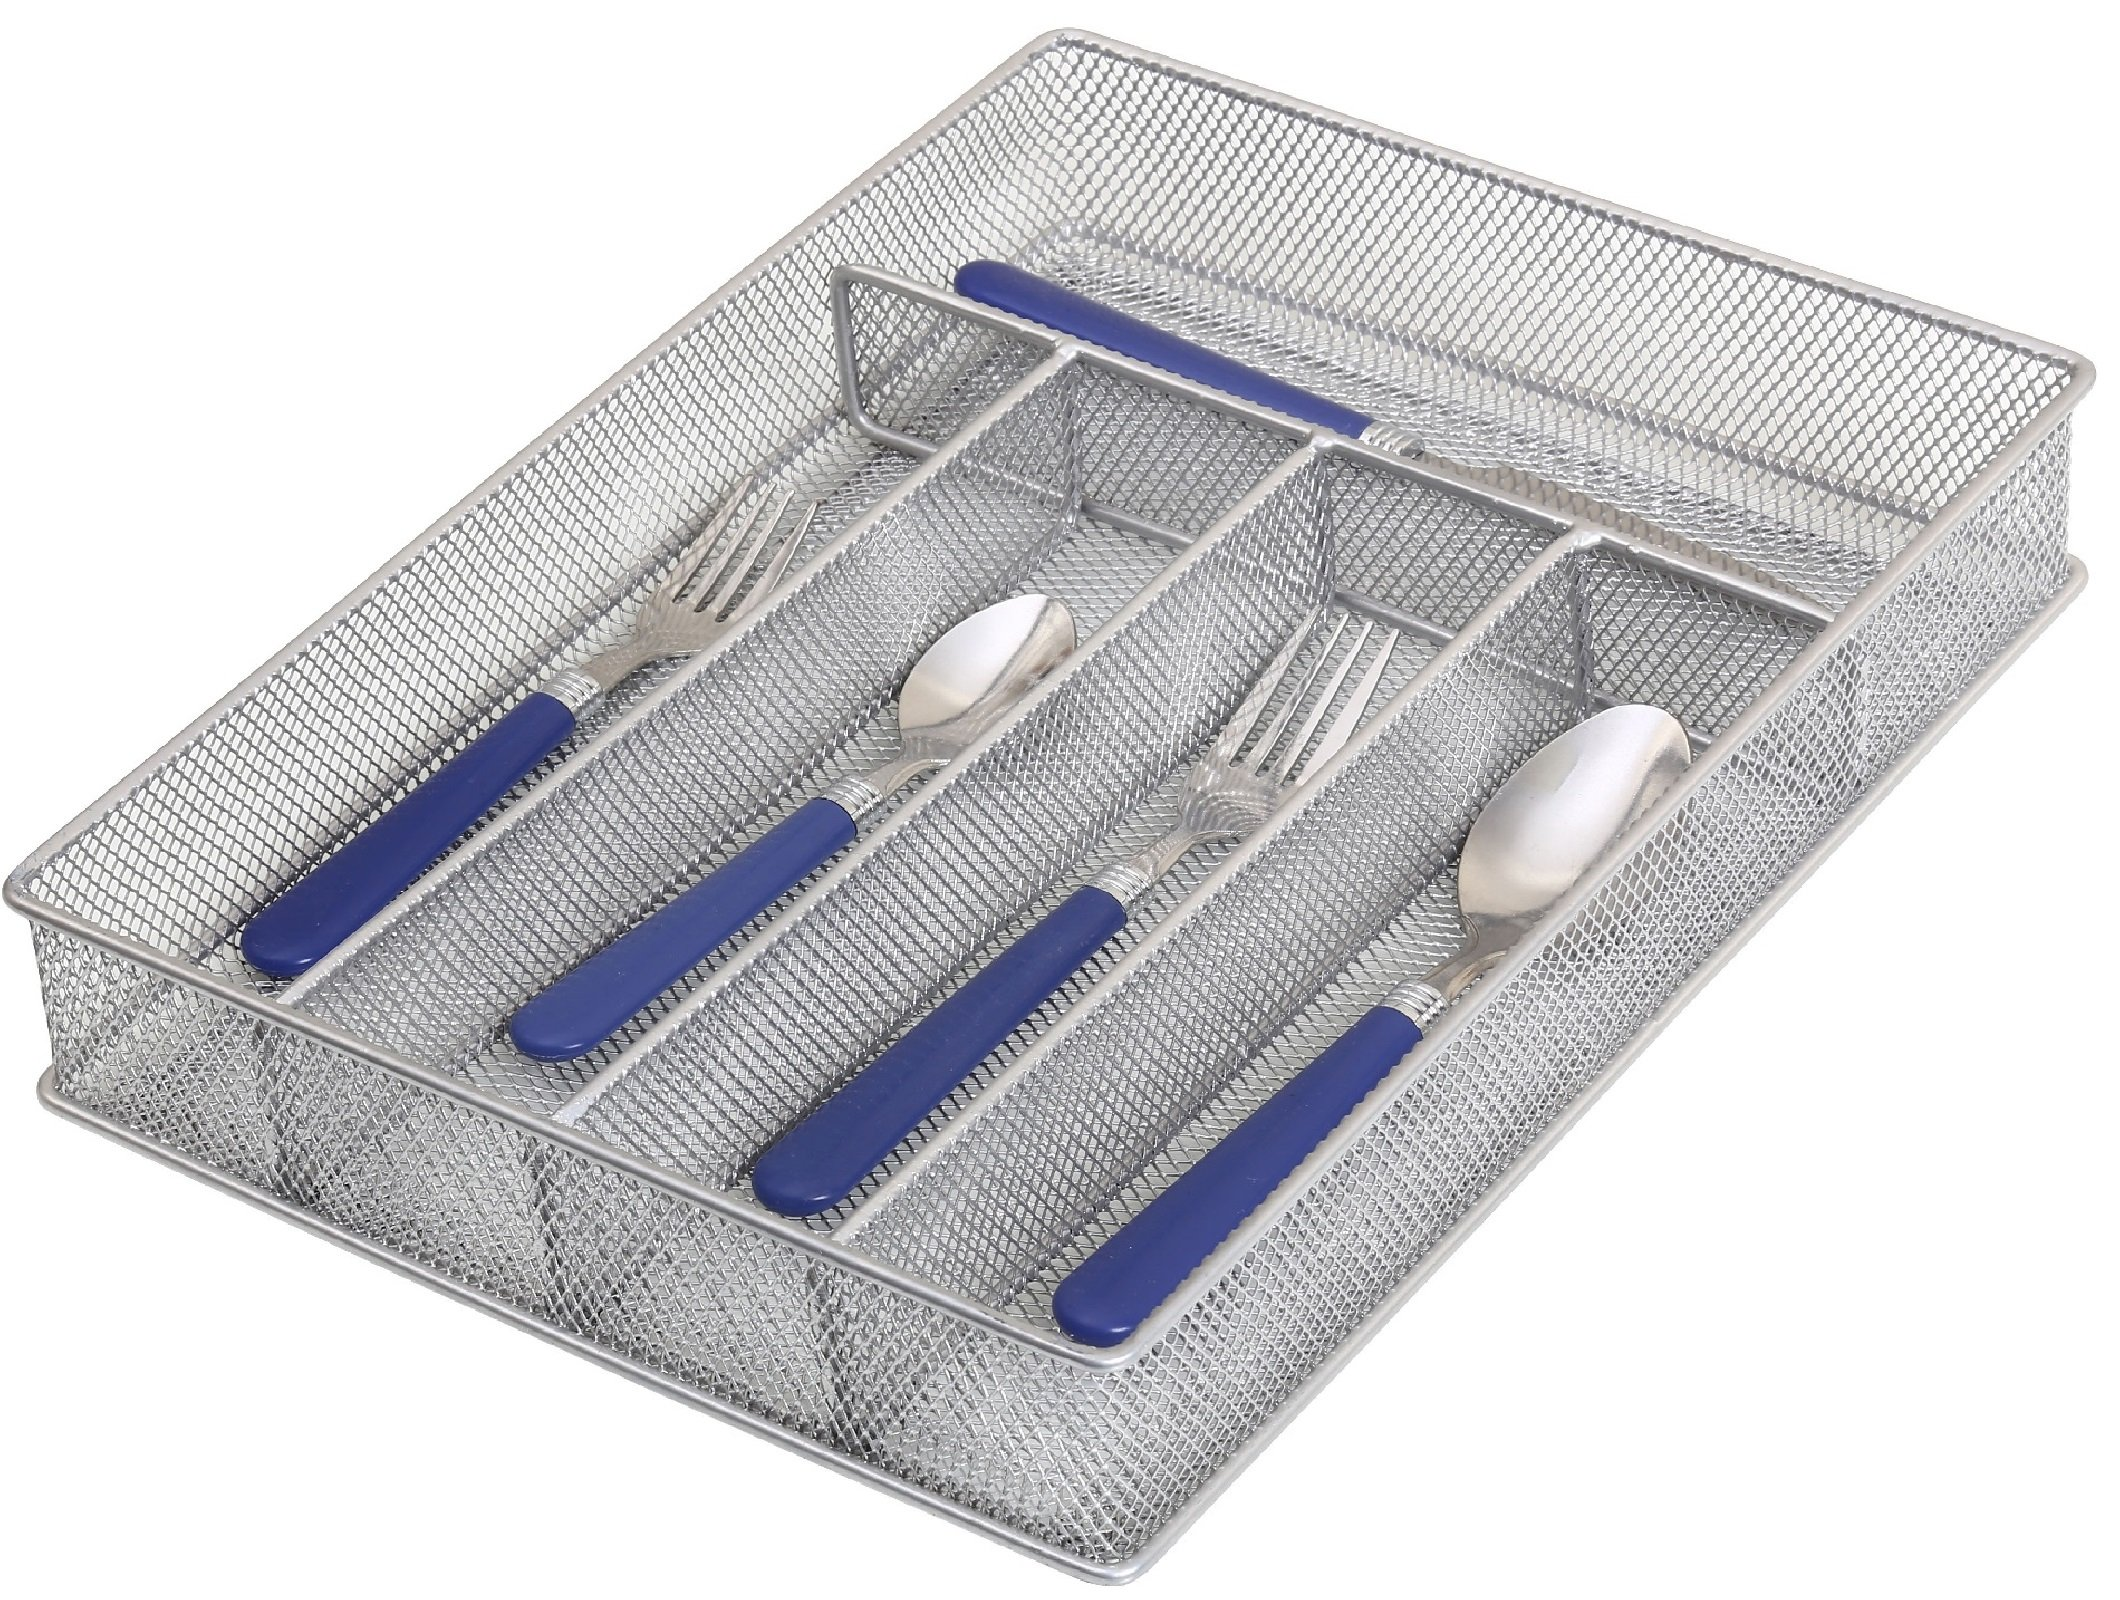 Ybm Home Silver Mesh Kitchen In-Drawer Serving Utensils, Flatware, Cutlery Desk and Office Supplies Organizer/Tray Holder Silverware Storage 12.5'' L x 9.25'' W x 2'' H 1133s (1, 5 Compartment)